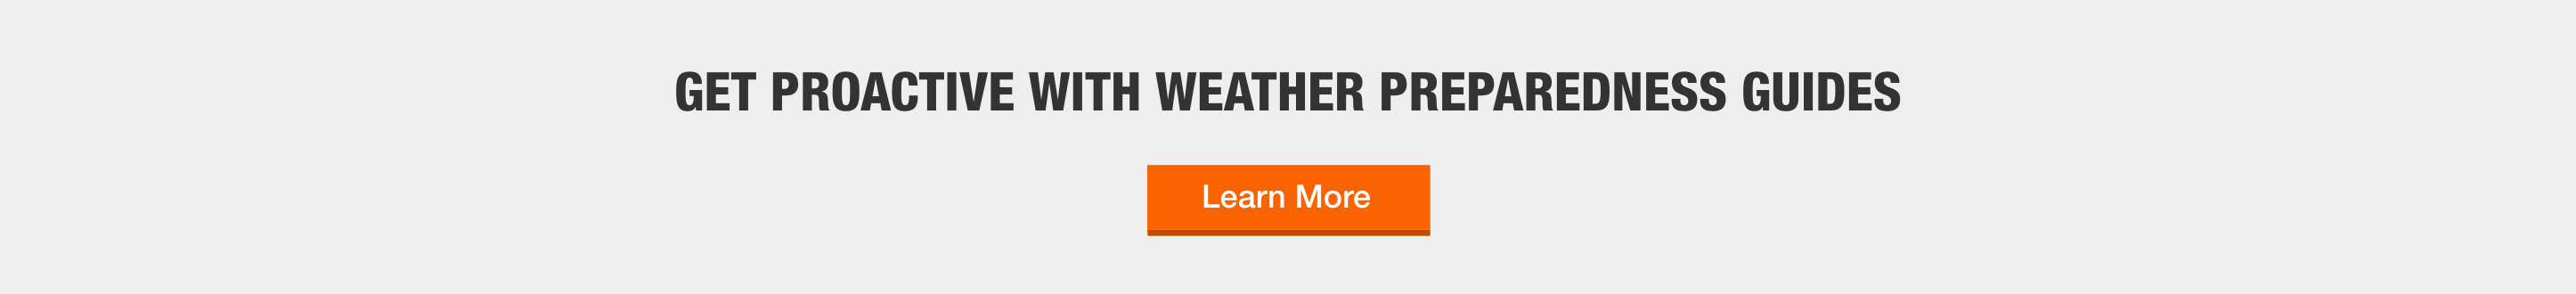 Get Proactive with Weather Preparedness Guides